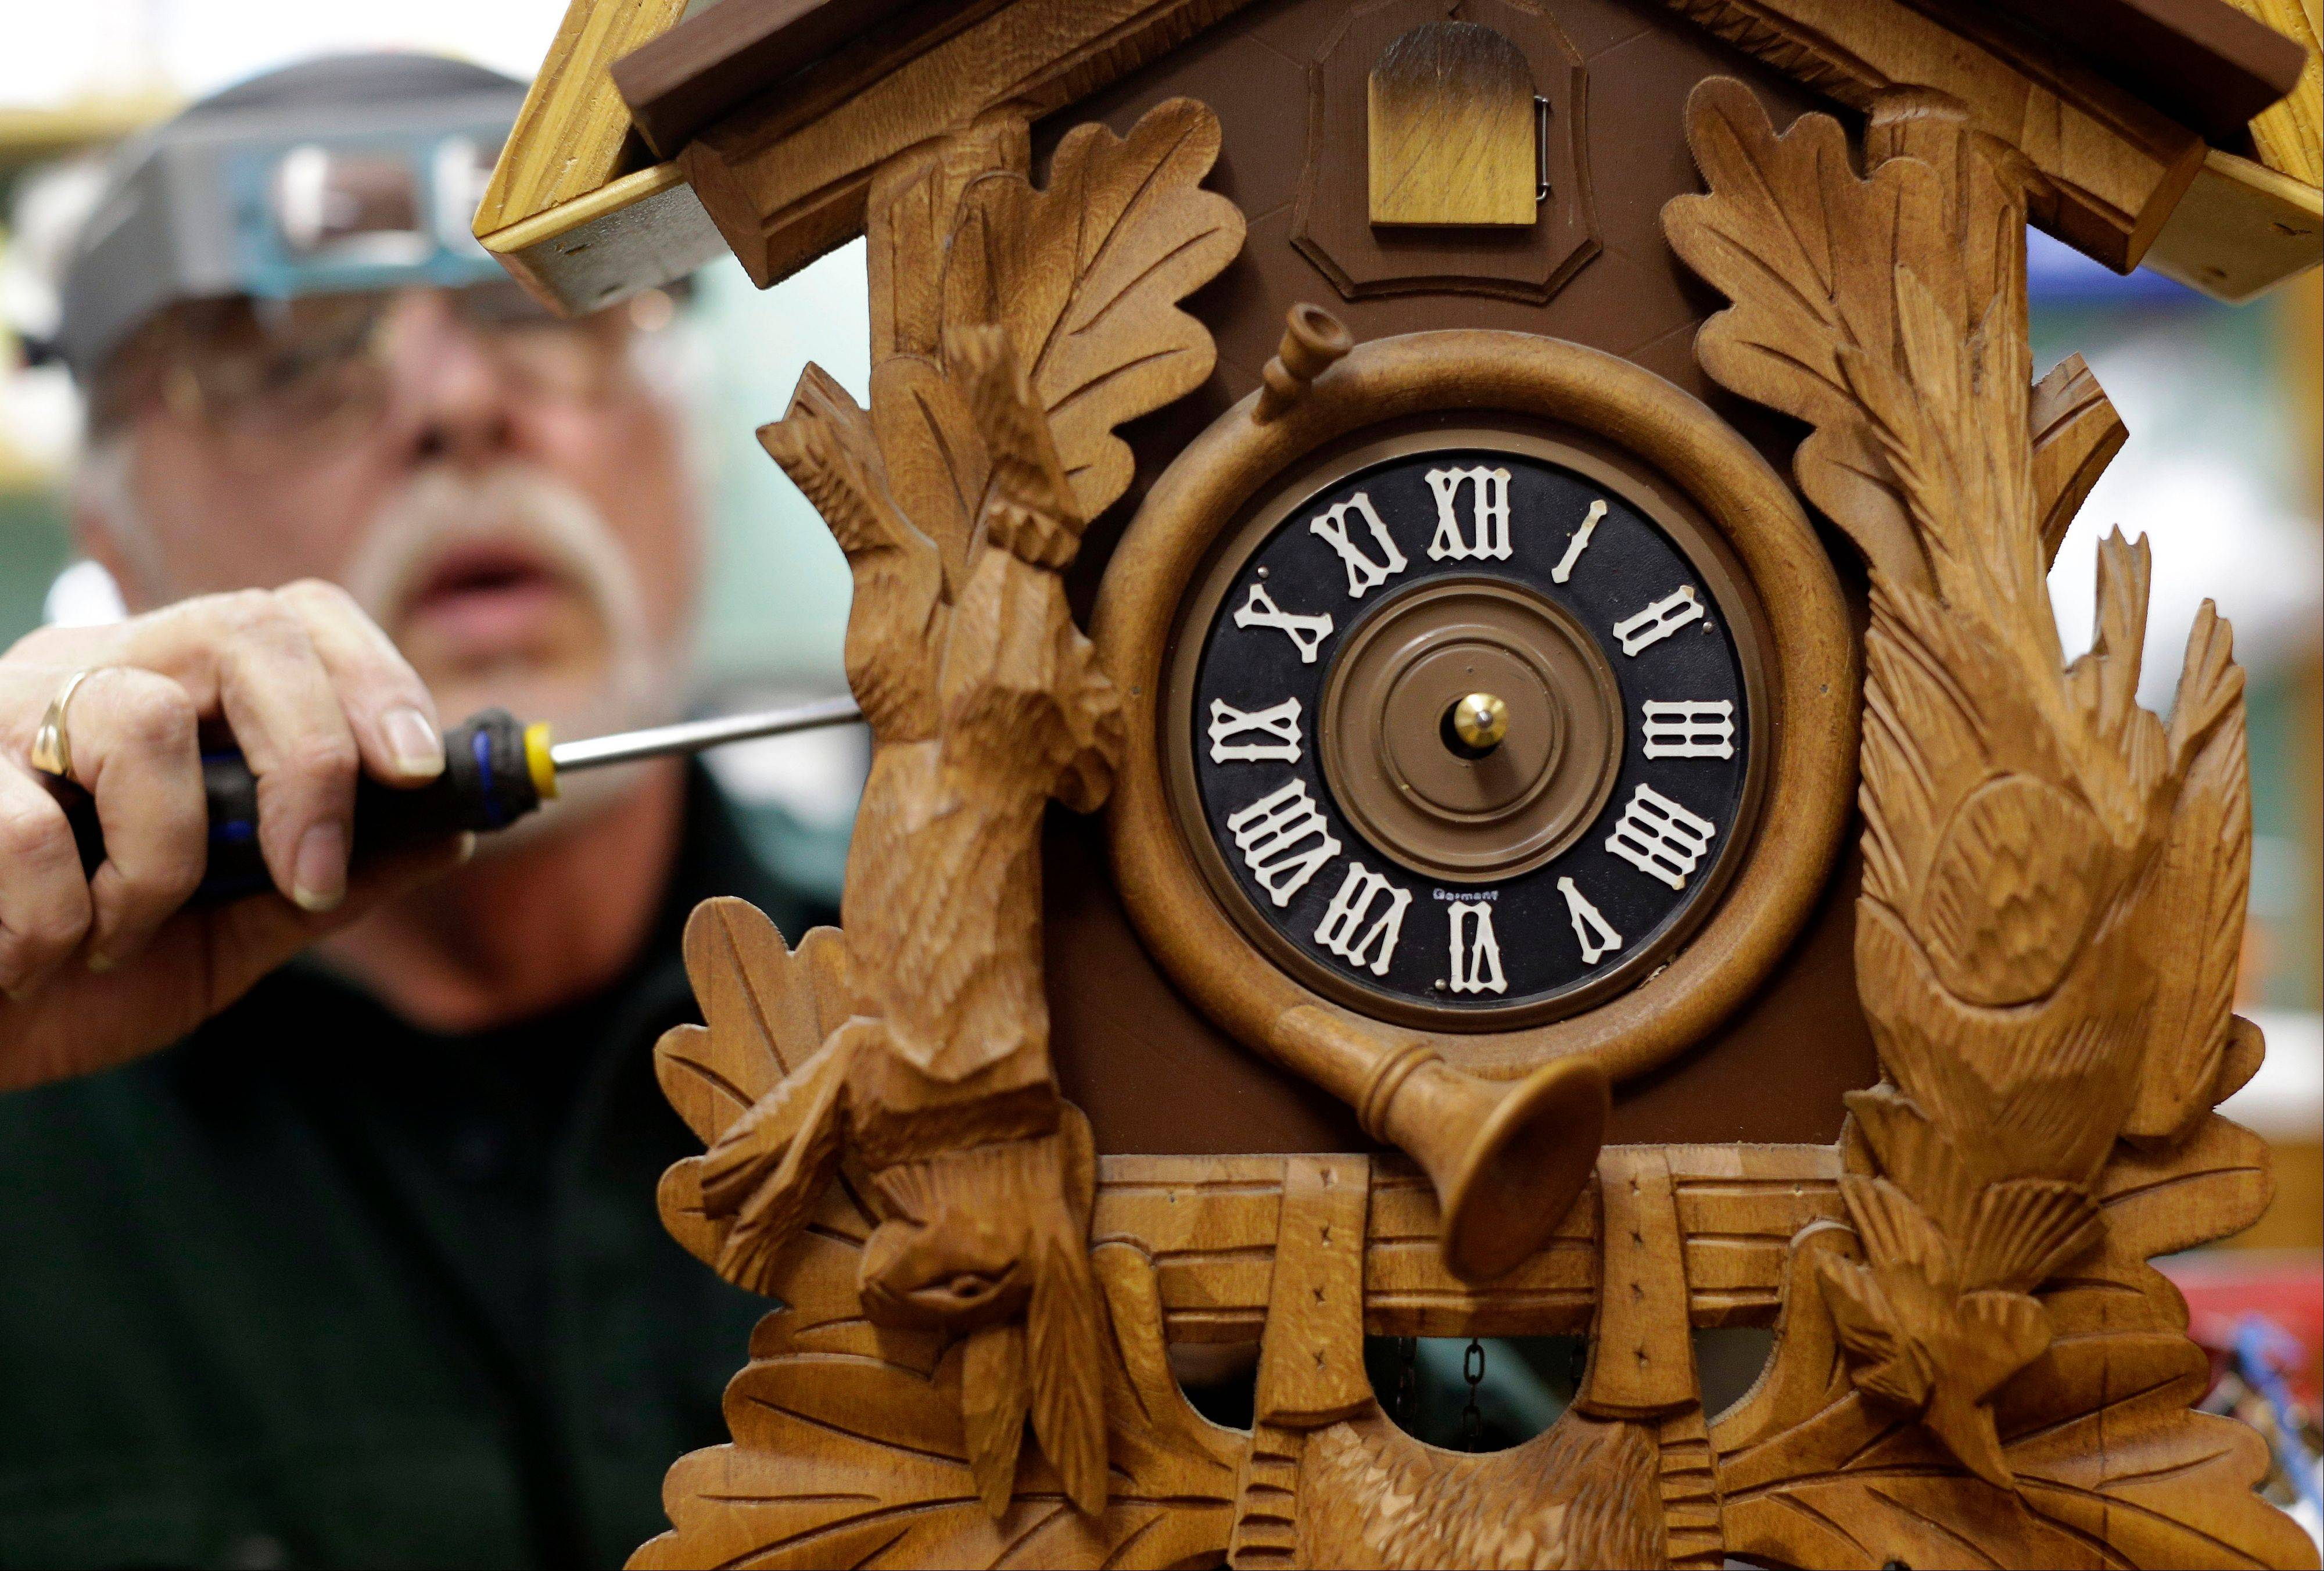 Ken Peters repairs a cuckoo clock Friday in Hands of Time, a clock store and repair shop in Savage, Md.